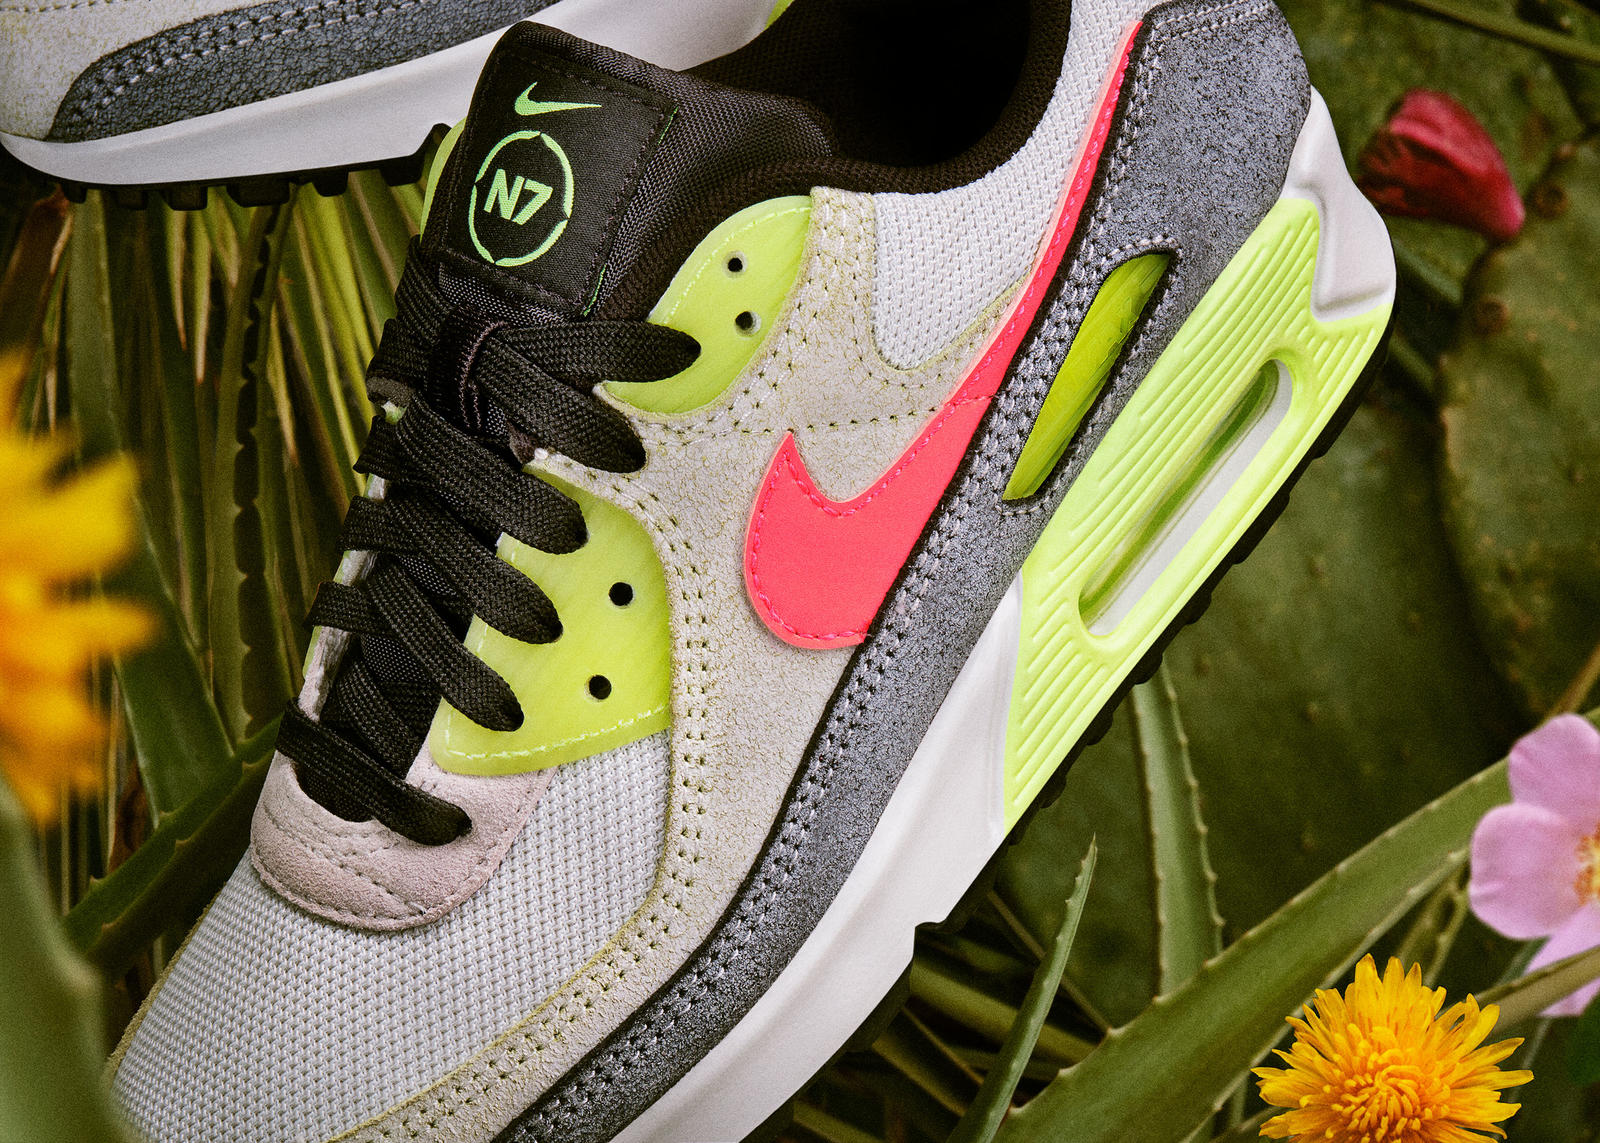 Nike N7 Summer 2020 Footwear and Apparel Official Images and Release Date 2 3